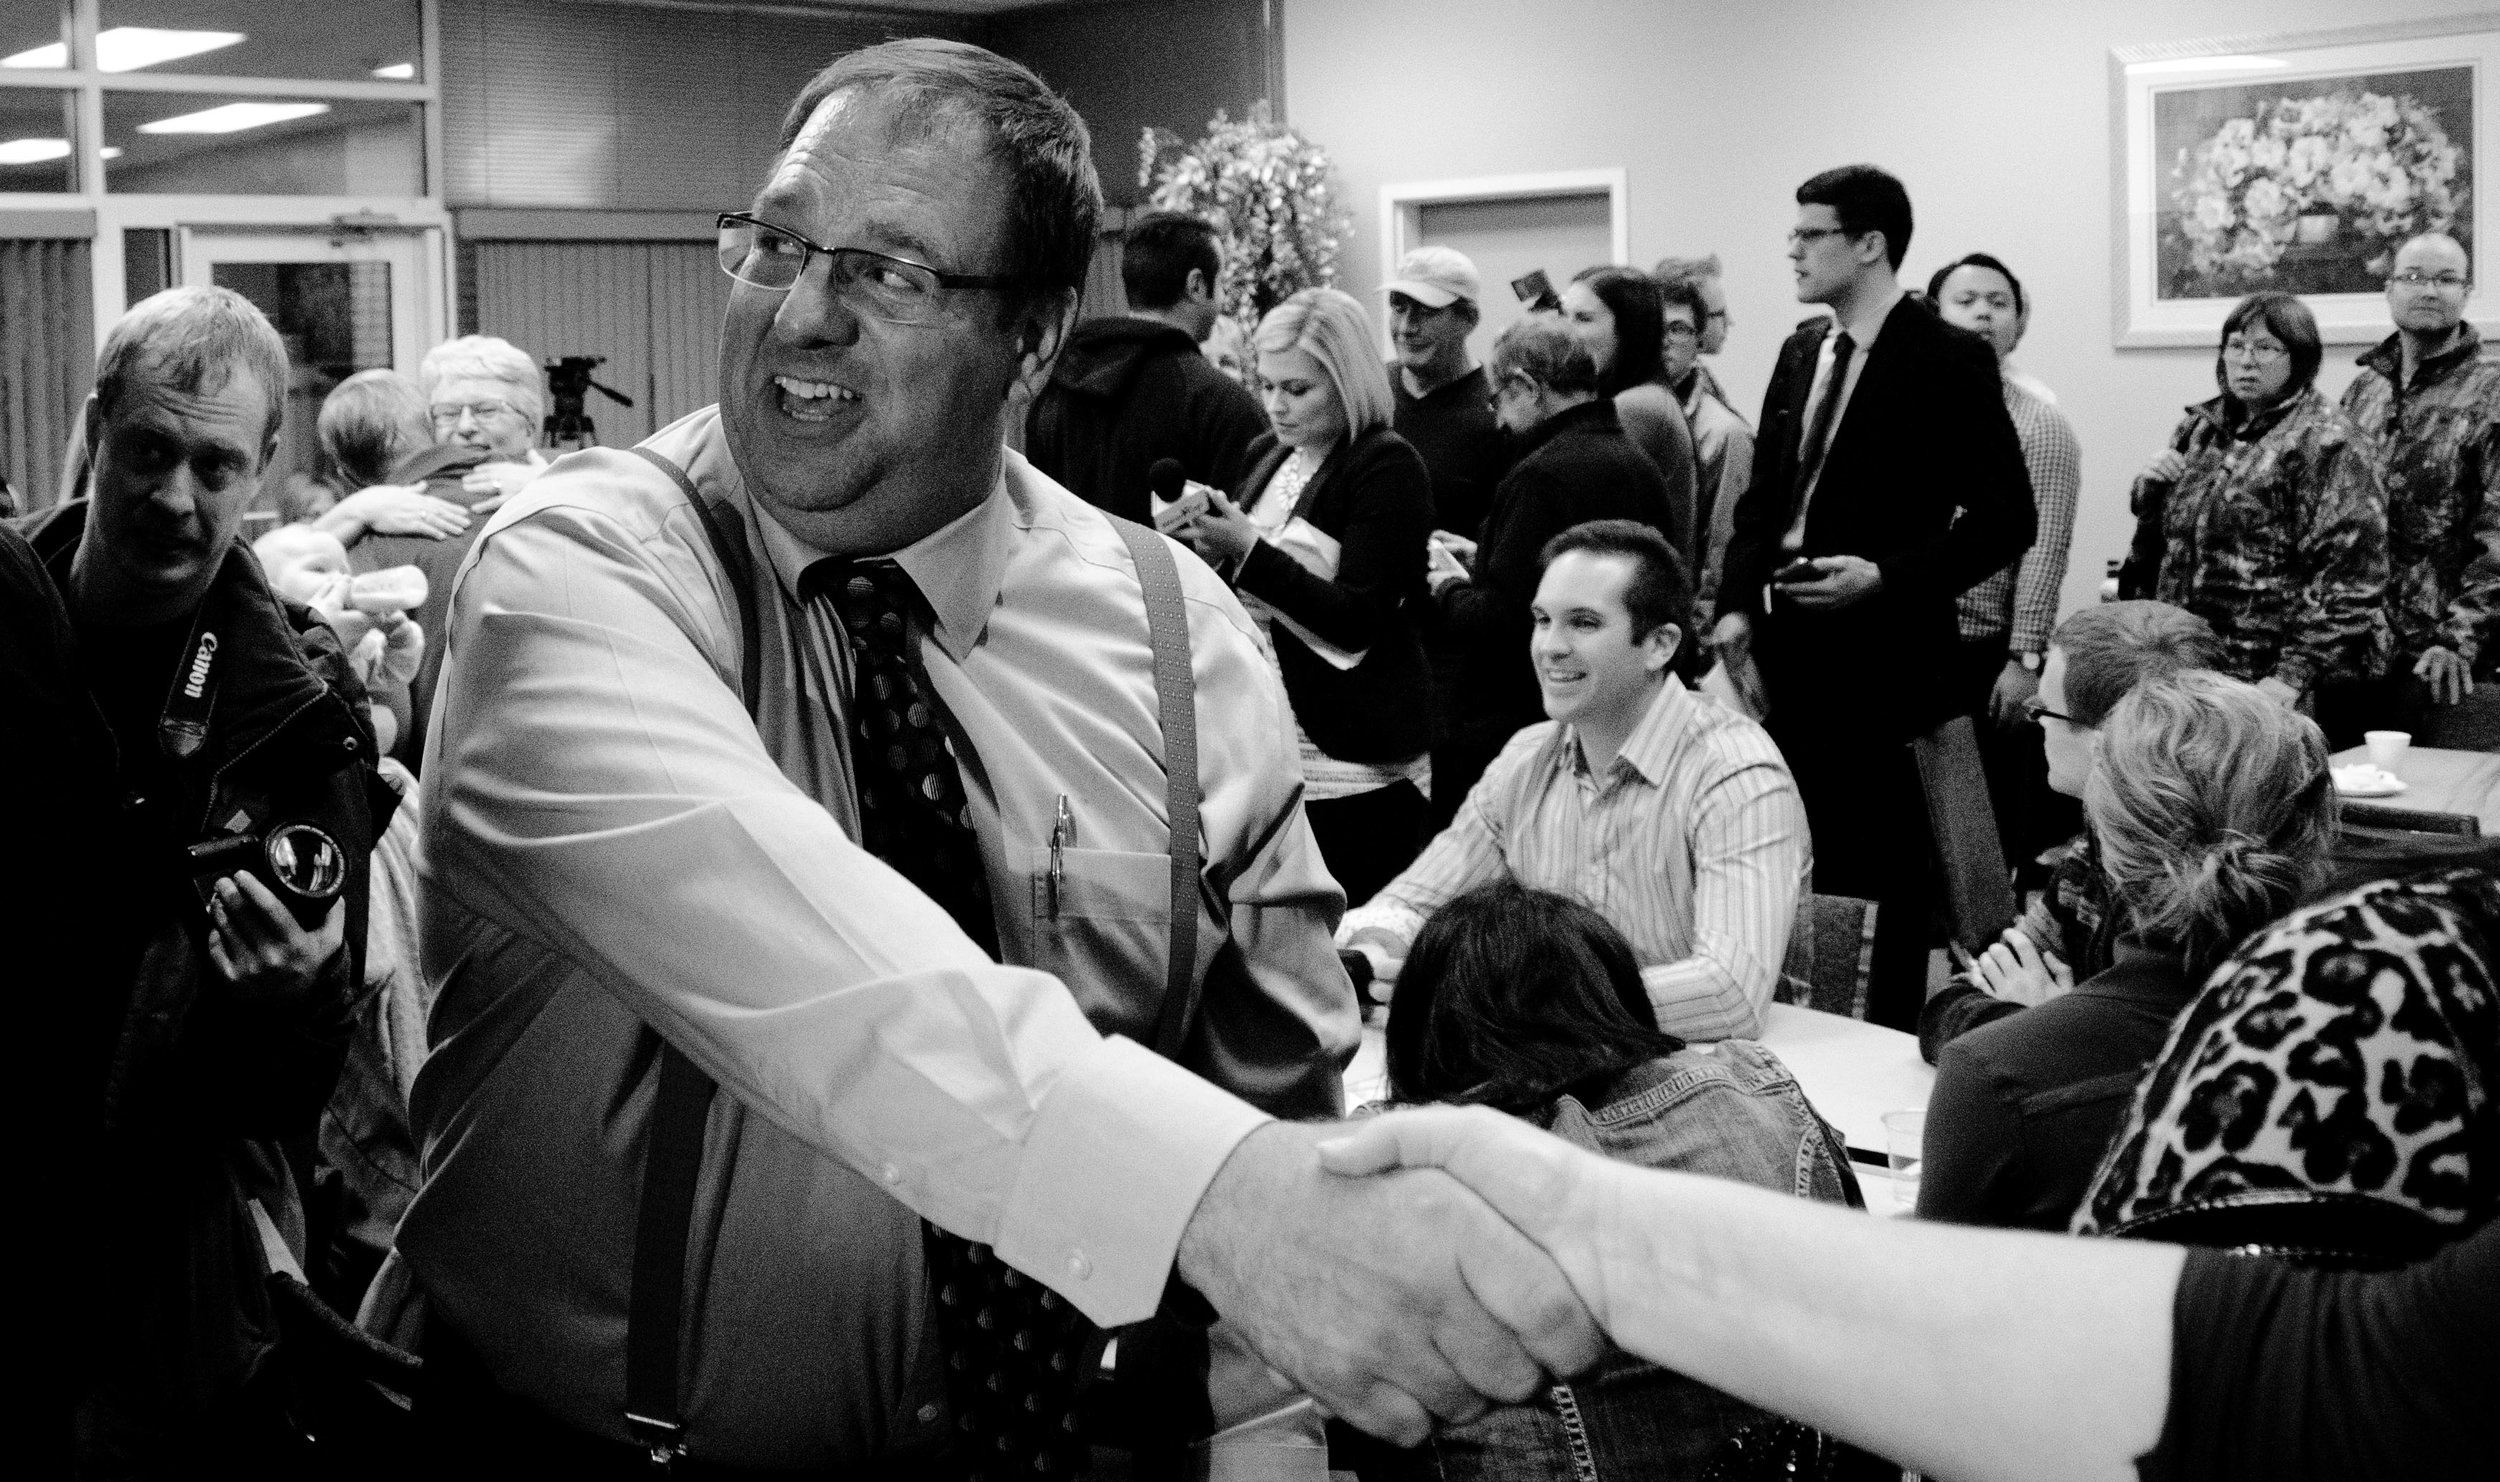 Once the website was back up, the results were immediately available. They showed a landslide win for Aalbers, and I had to run back from the front door of City Hall to the Legacy Centre. I got back in time to capture moments from the celebration in the room.